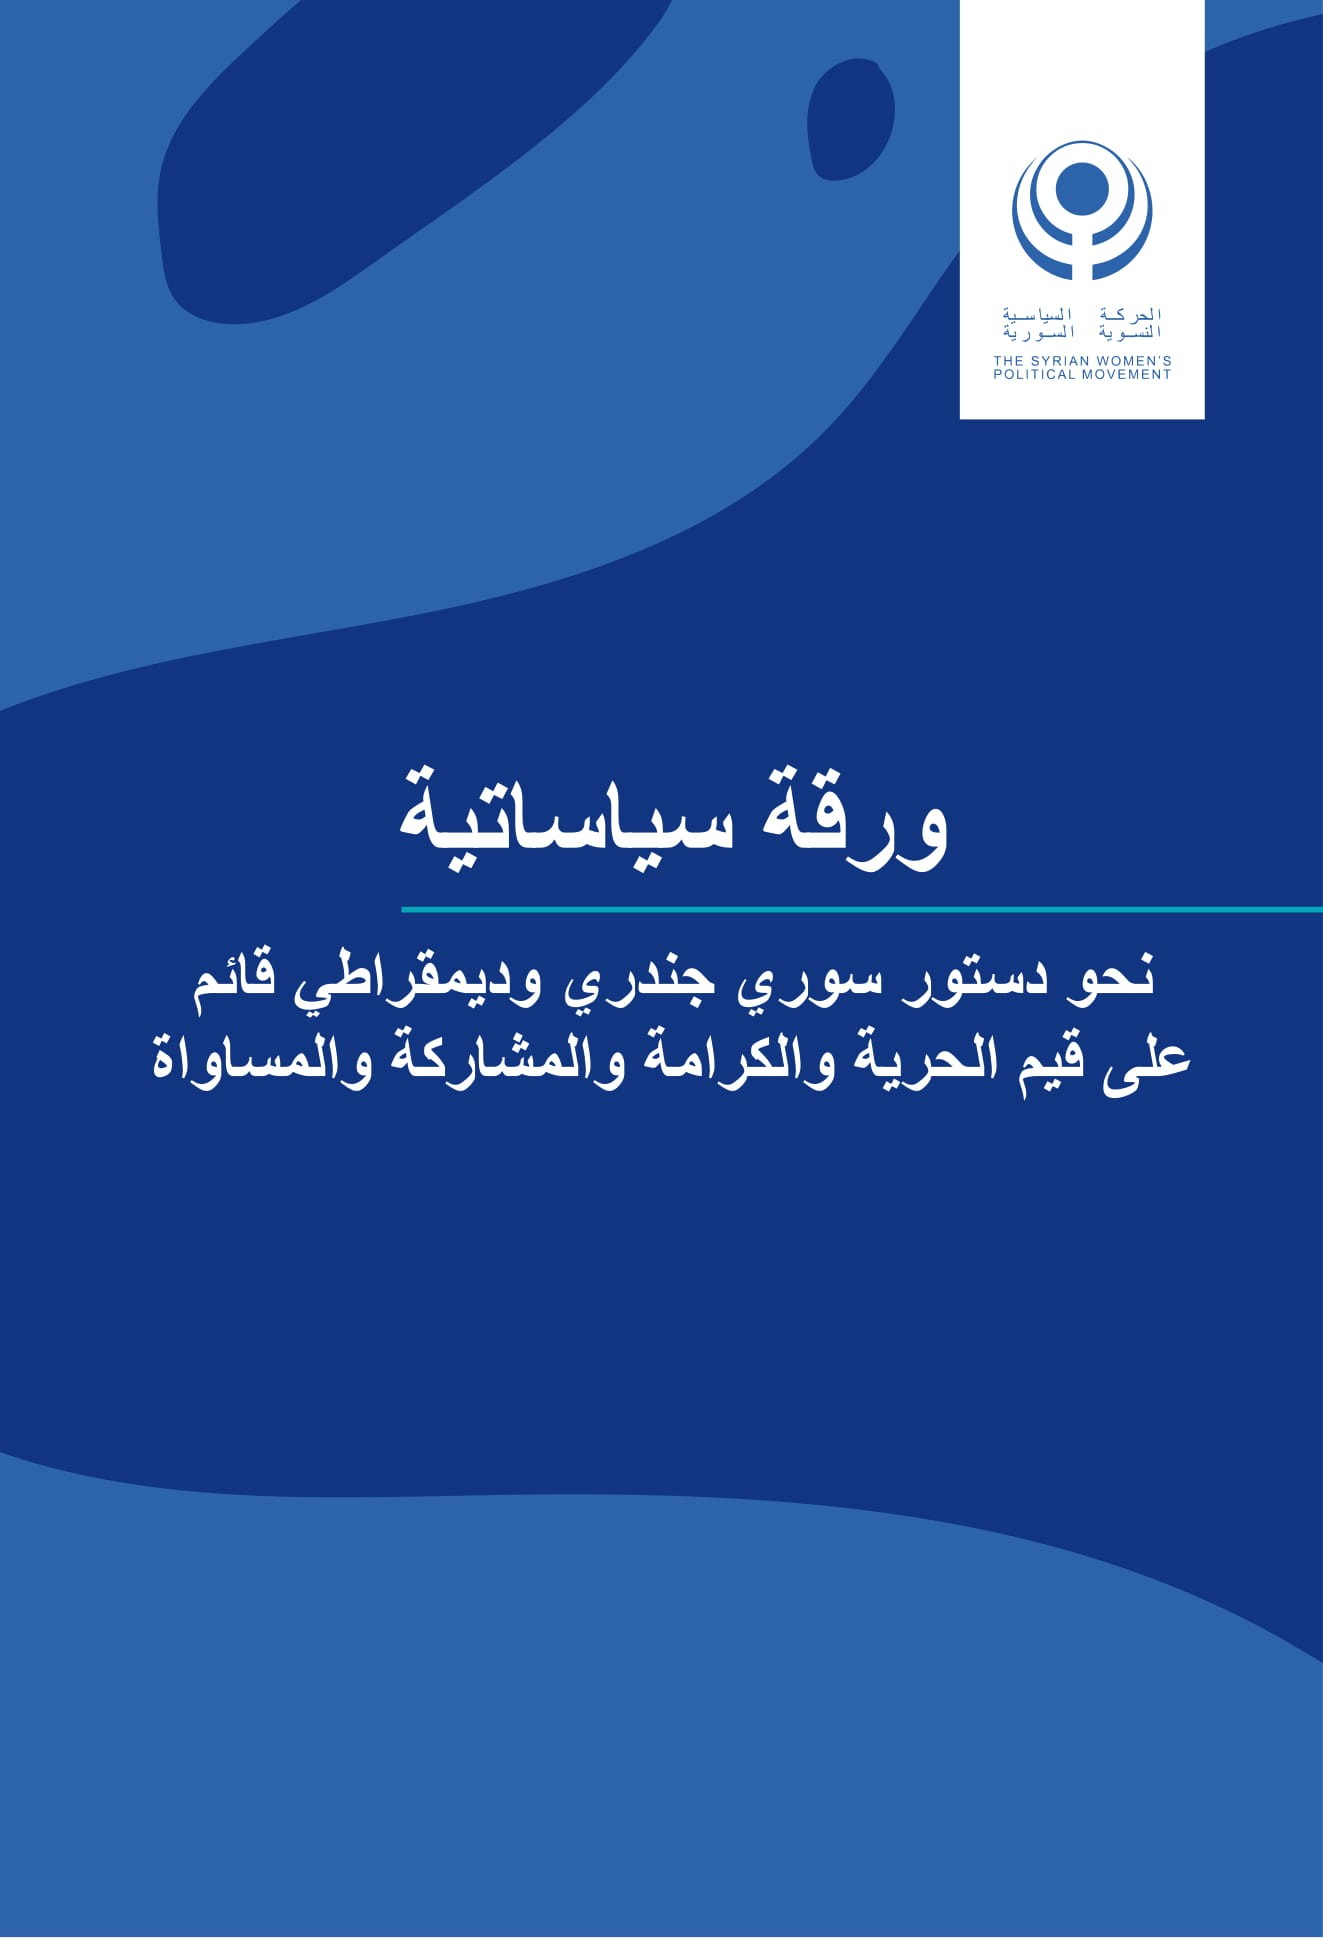 TOWARDS AN ENGENDERED DEMOCRATIC SYRIAN CONSTITUTION BASED ON THE VALUES OF FREEDOM, DIGNITY, PARTICIPATION AND EQUALITY